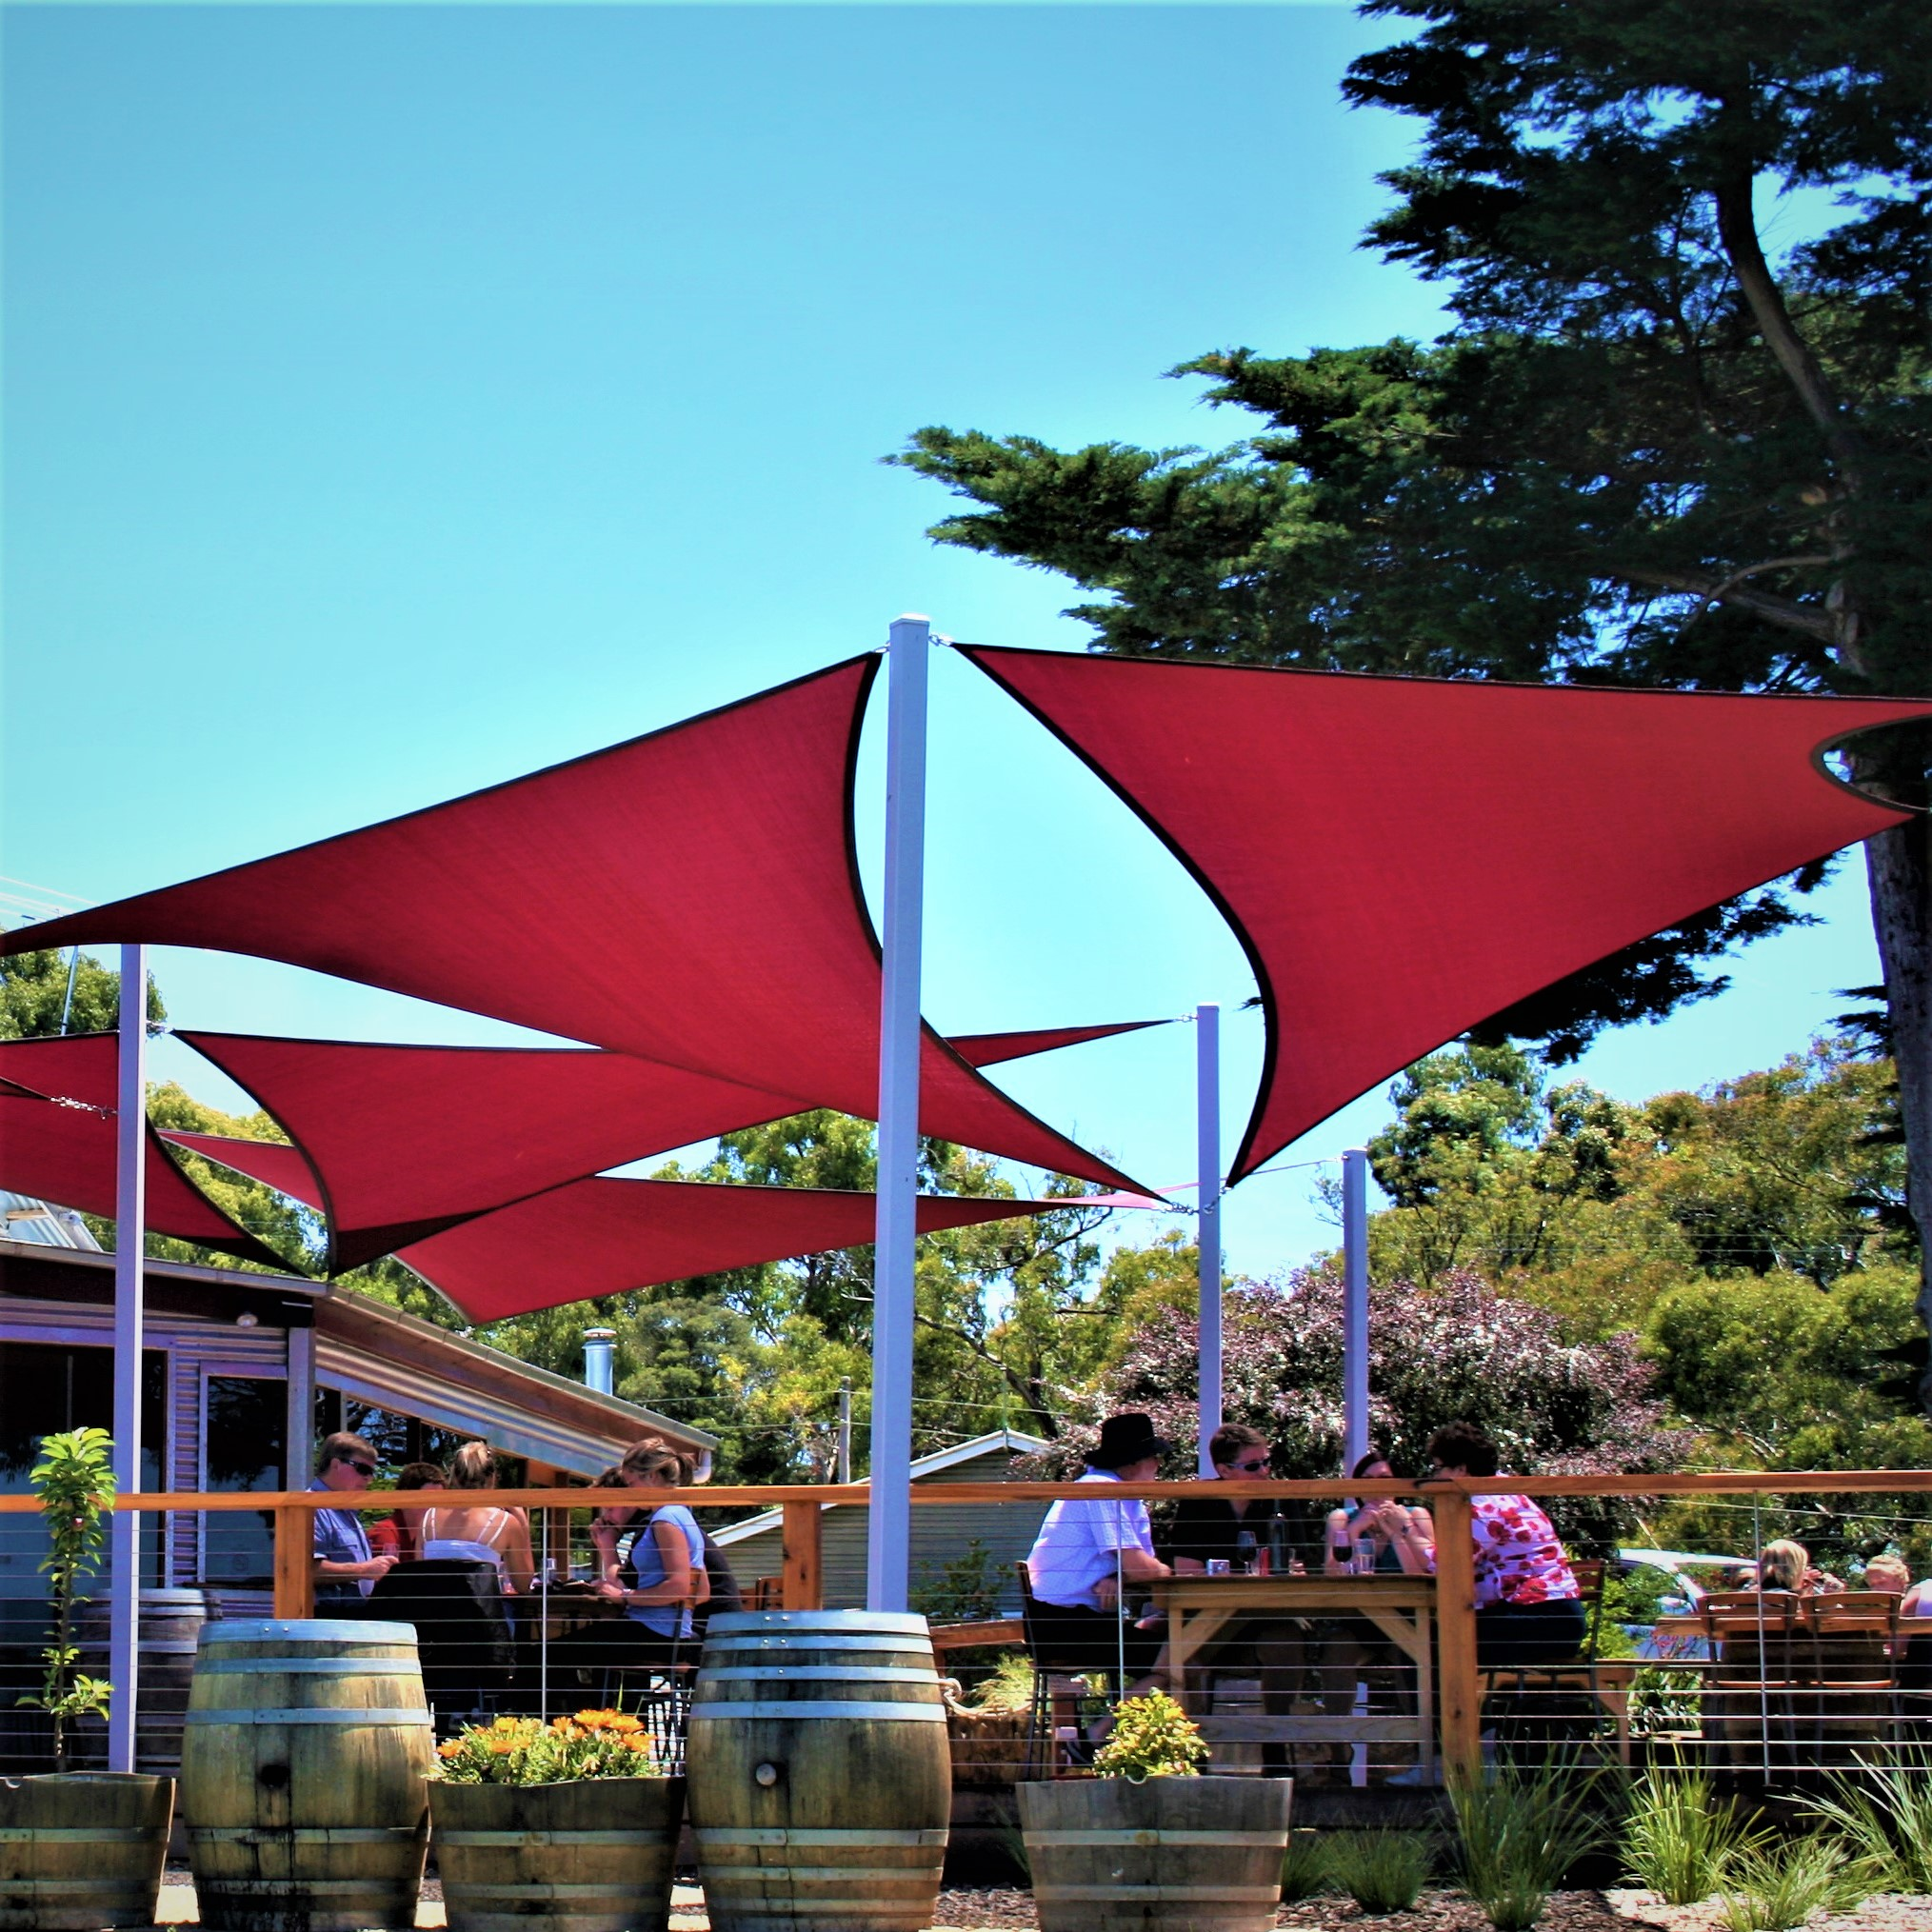 Featured Product - Shade sails and structures custom made. Designed and installed for commercial, government and residential developments.✔ $20 Million Public & Product Liability Insurance ✔ 5 Year Structural Warranty✔ 10 Year Shade Cloth WarrantyLearn More